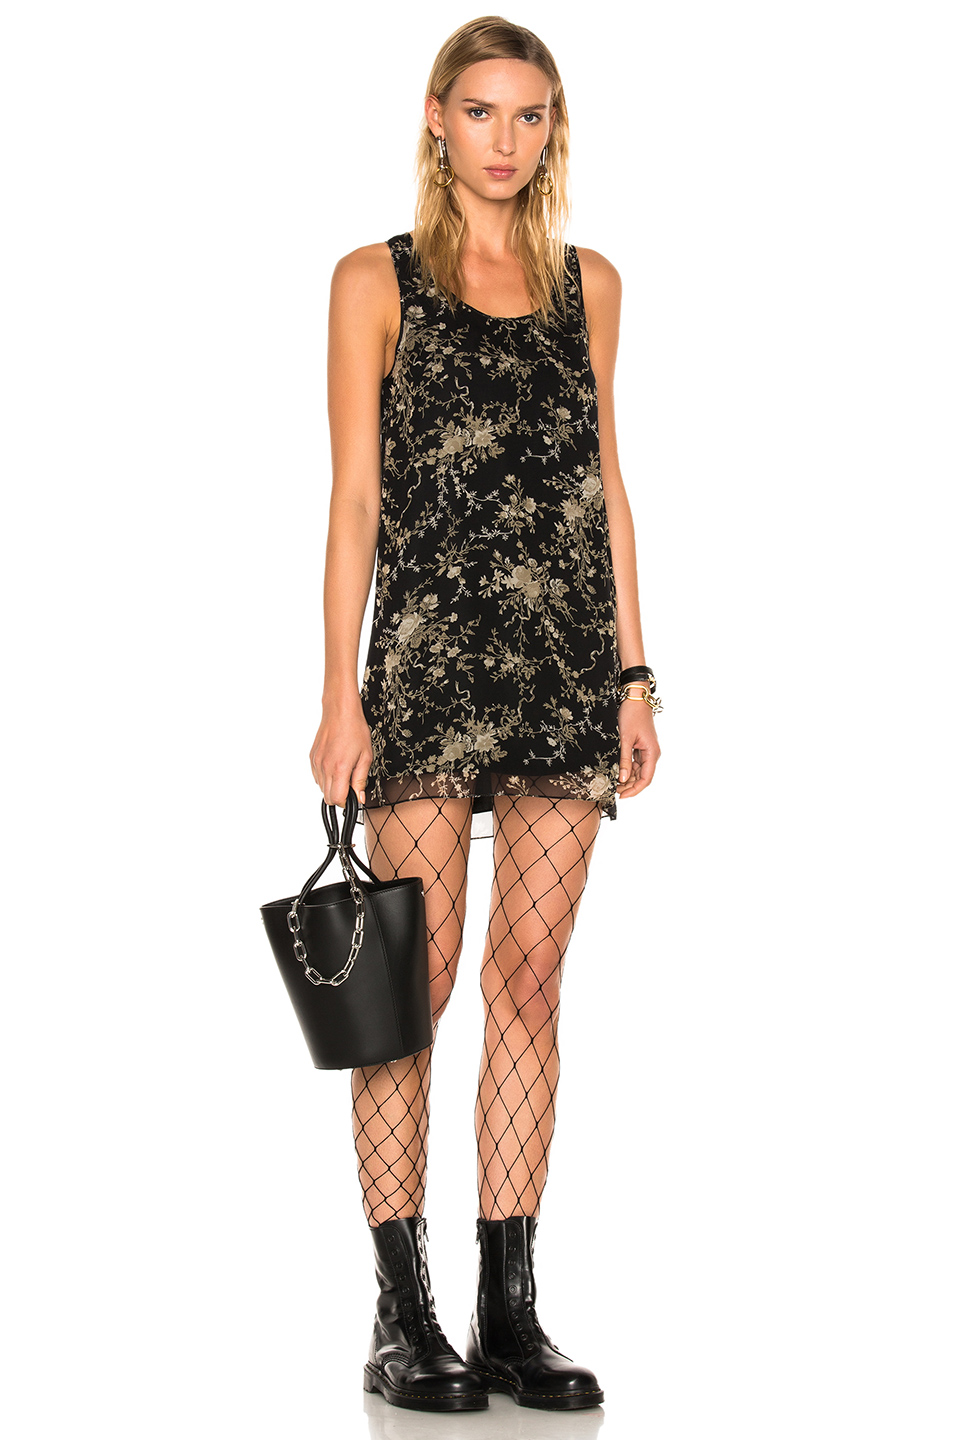 R13 For Fwrd Exclusive Mini Tank Dress In Black,Floral,Neutrals